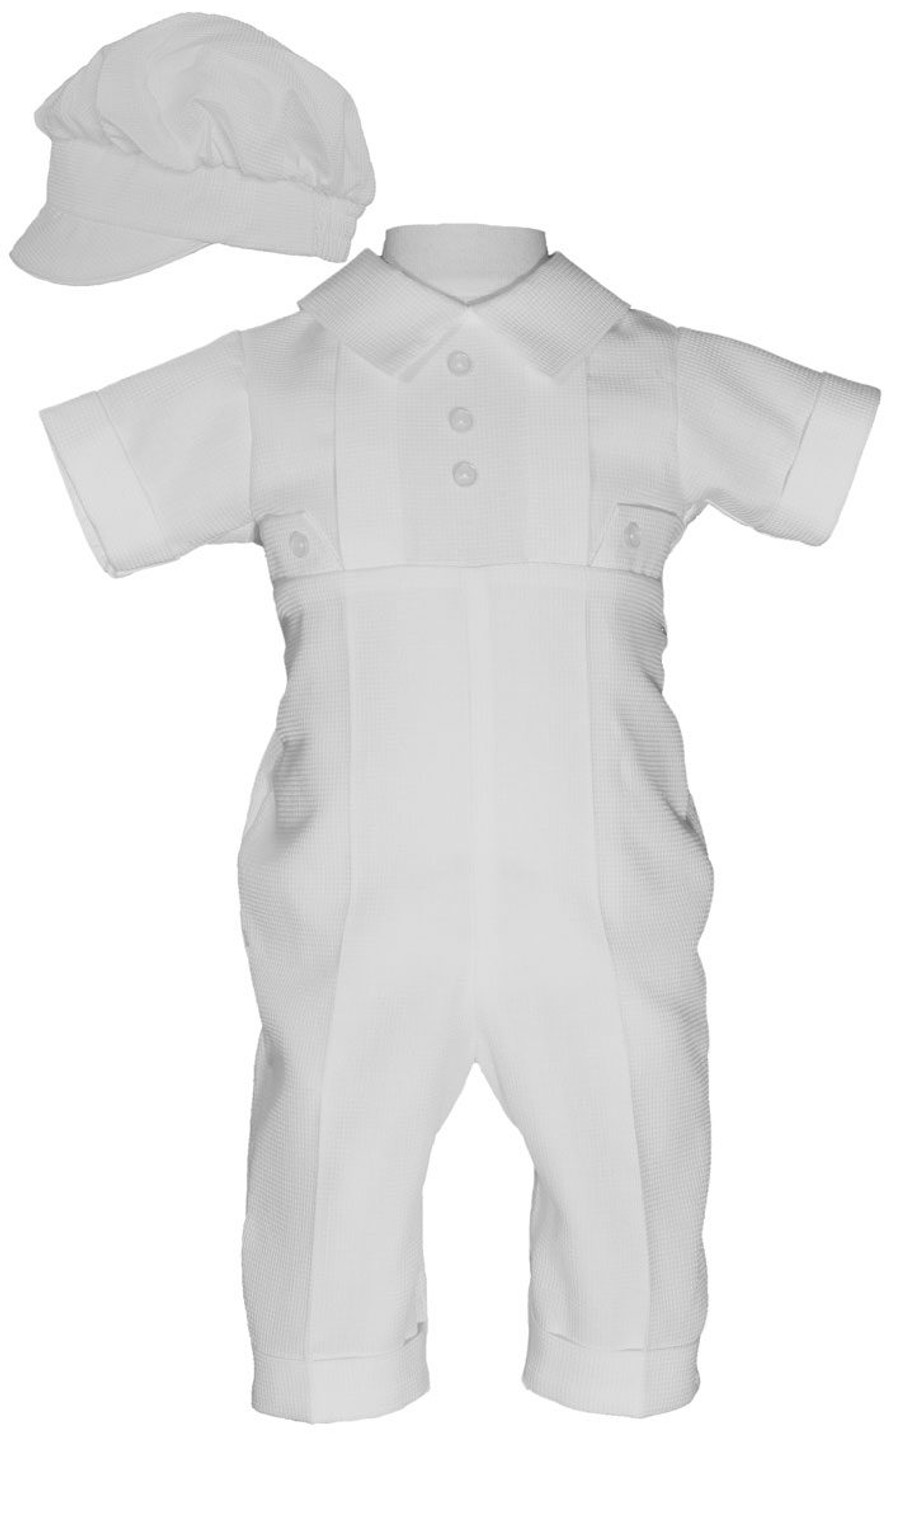 426b36b2a2 Boys Waffle Pique Christening Baptism Cotton Poly Coverall with Hat Only  Option